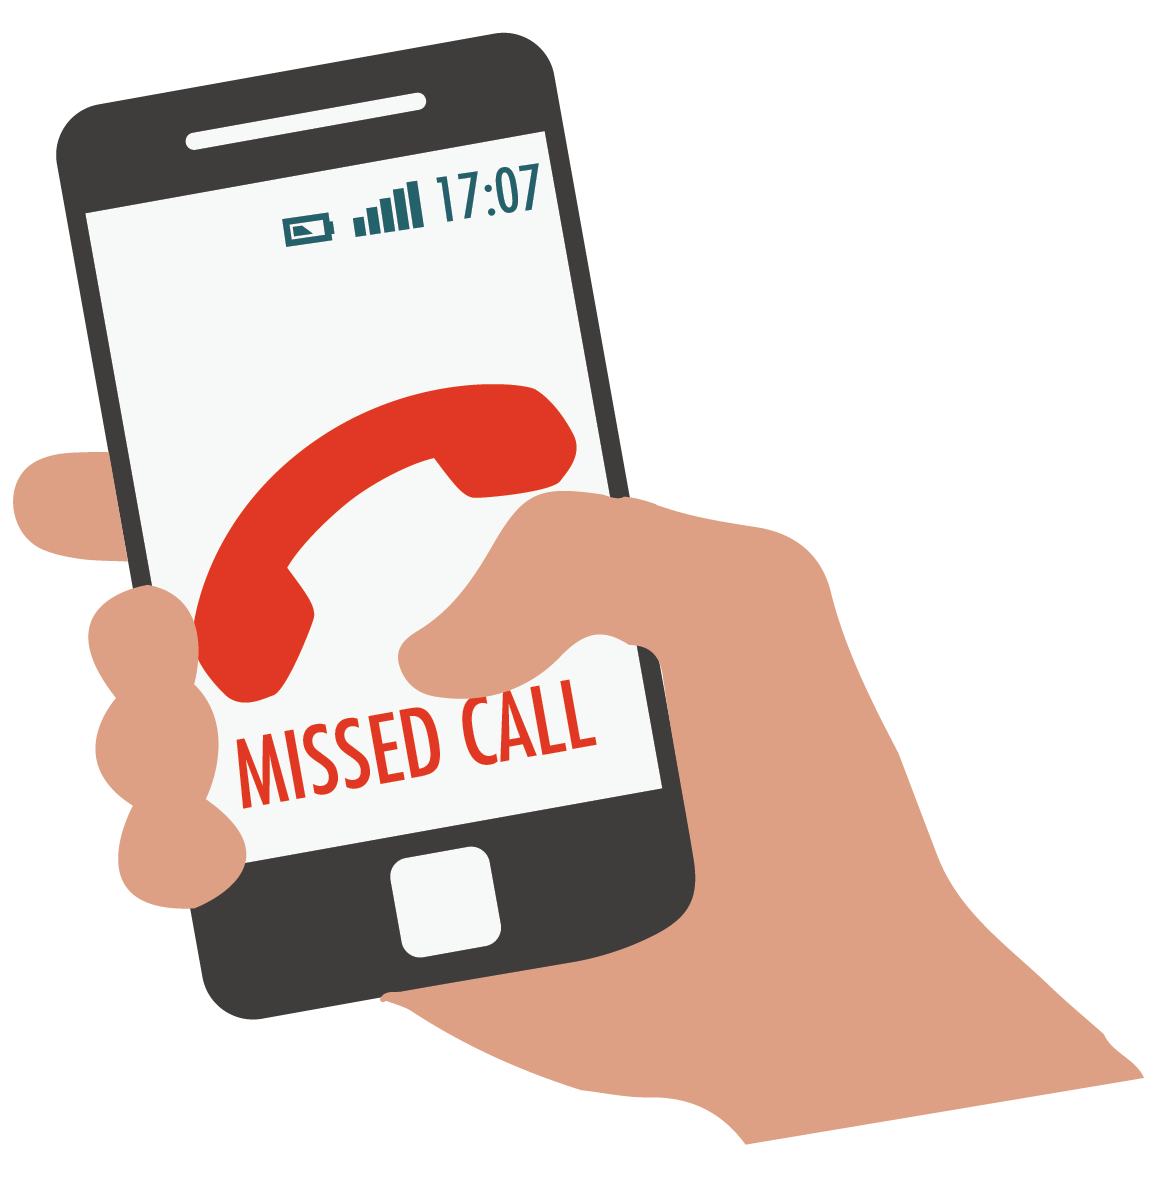 missed-call-notification-01.png